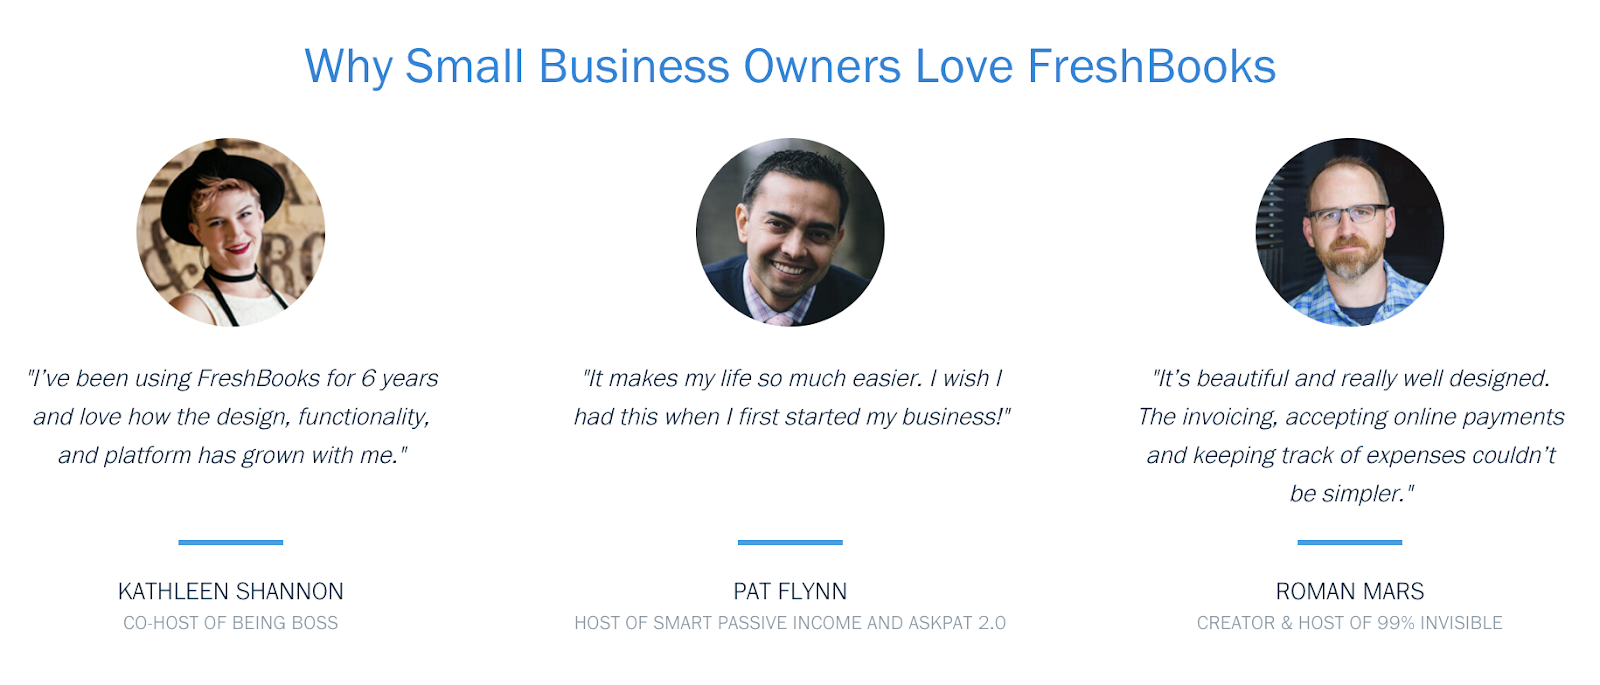 Freshbooks displays B2B testimonials from small business owners.